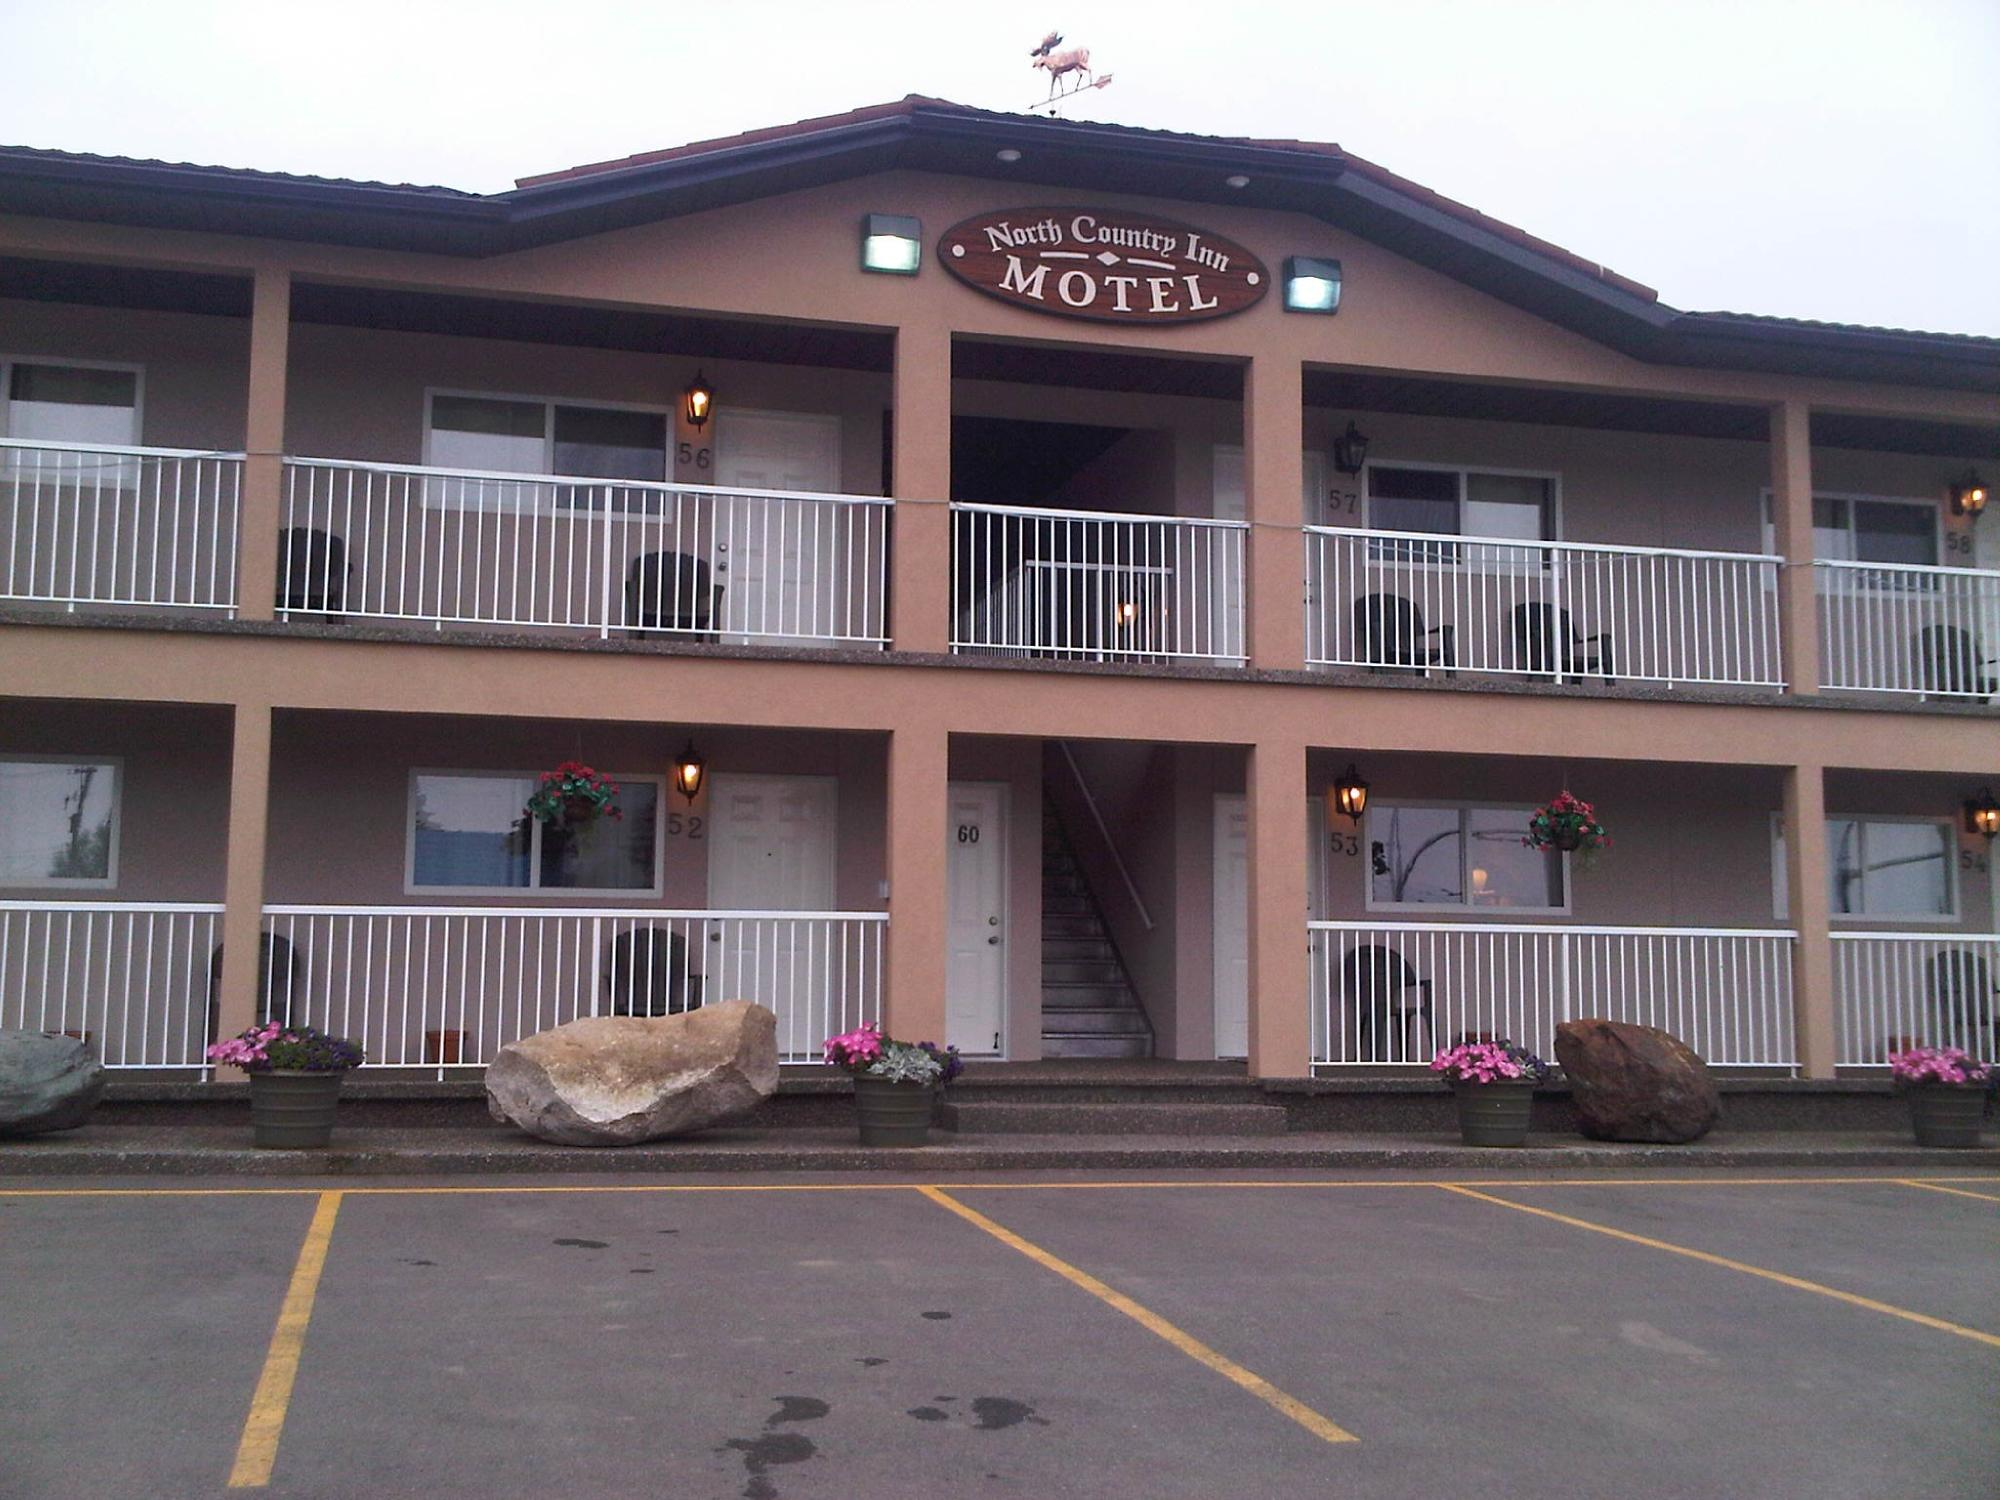 North Country Inn